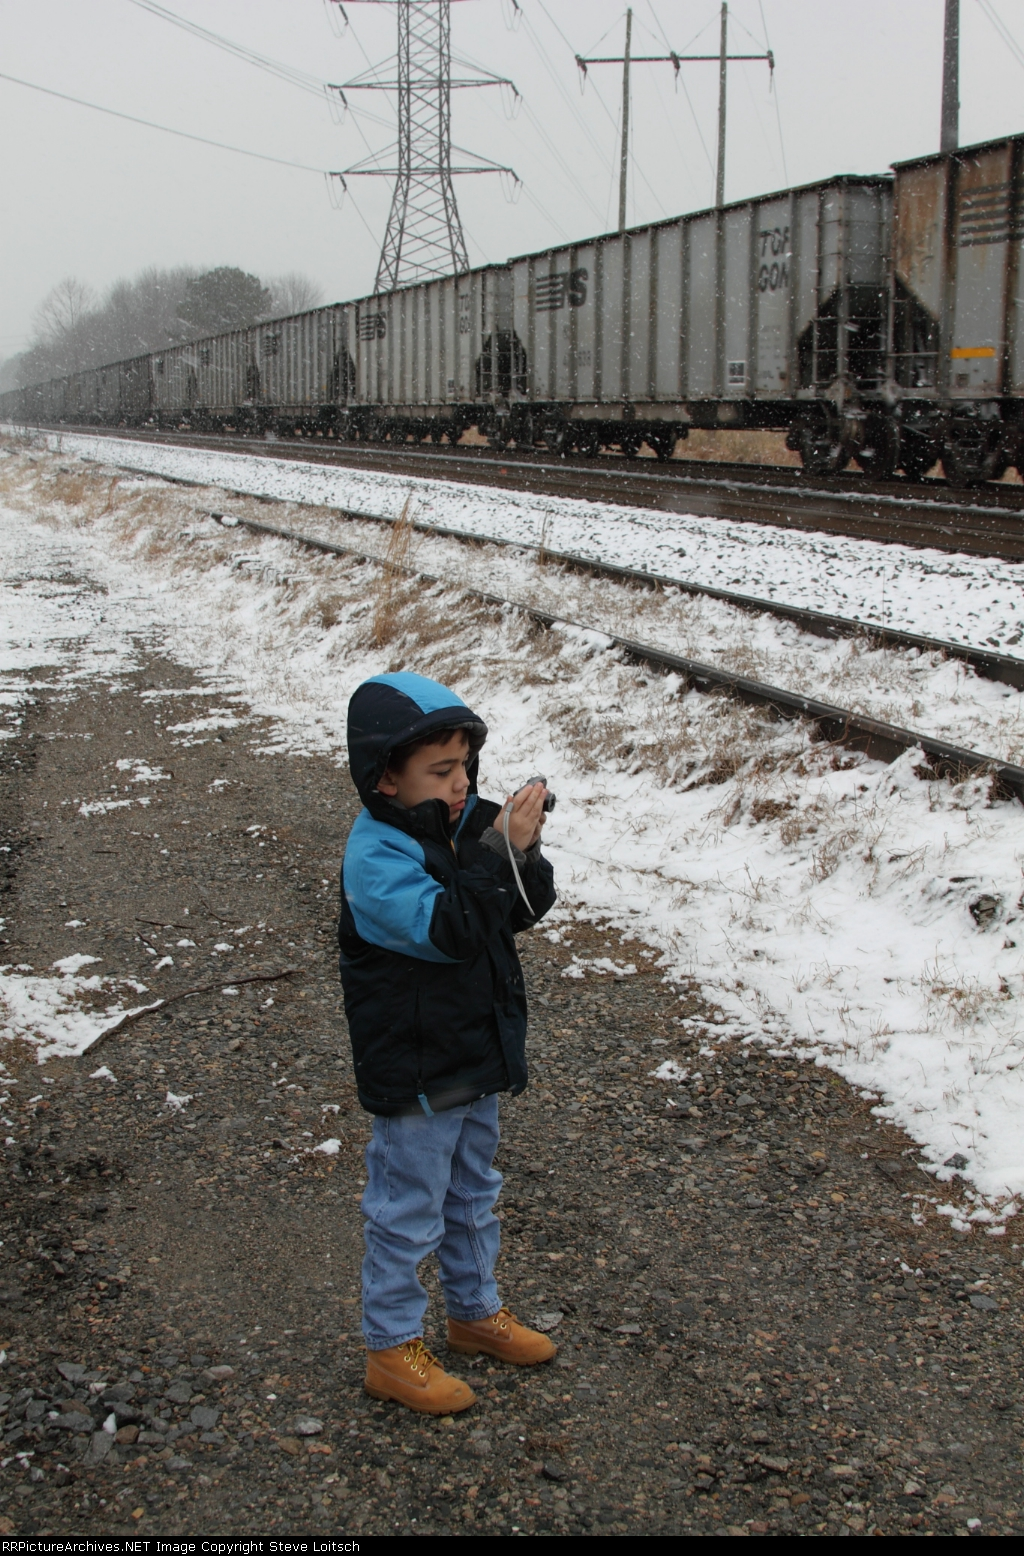 My railfan partner trying out his new camera!!!